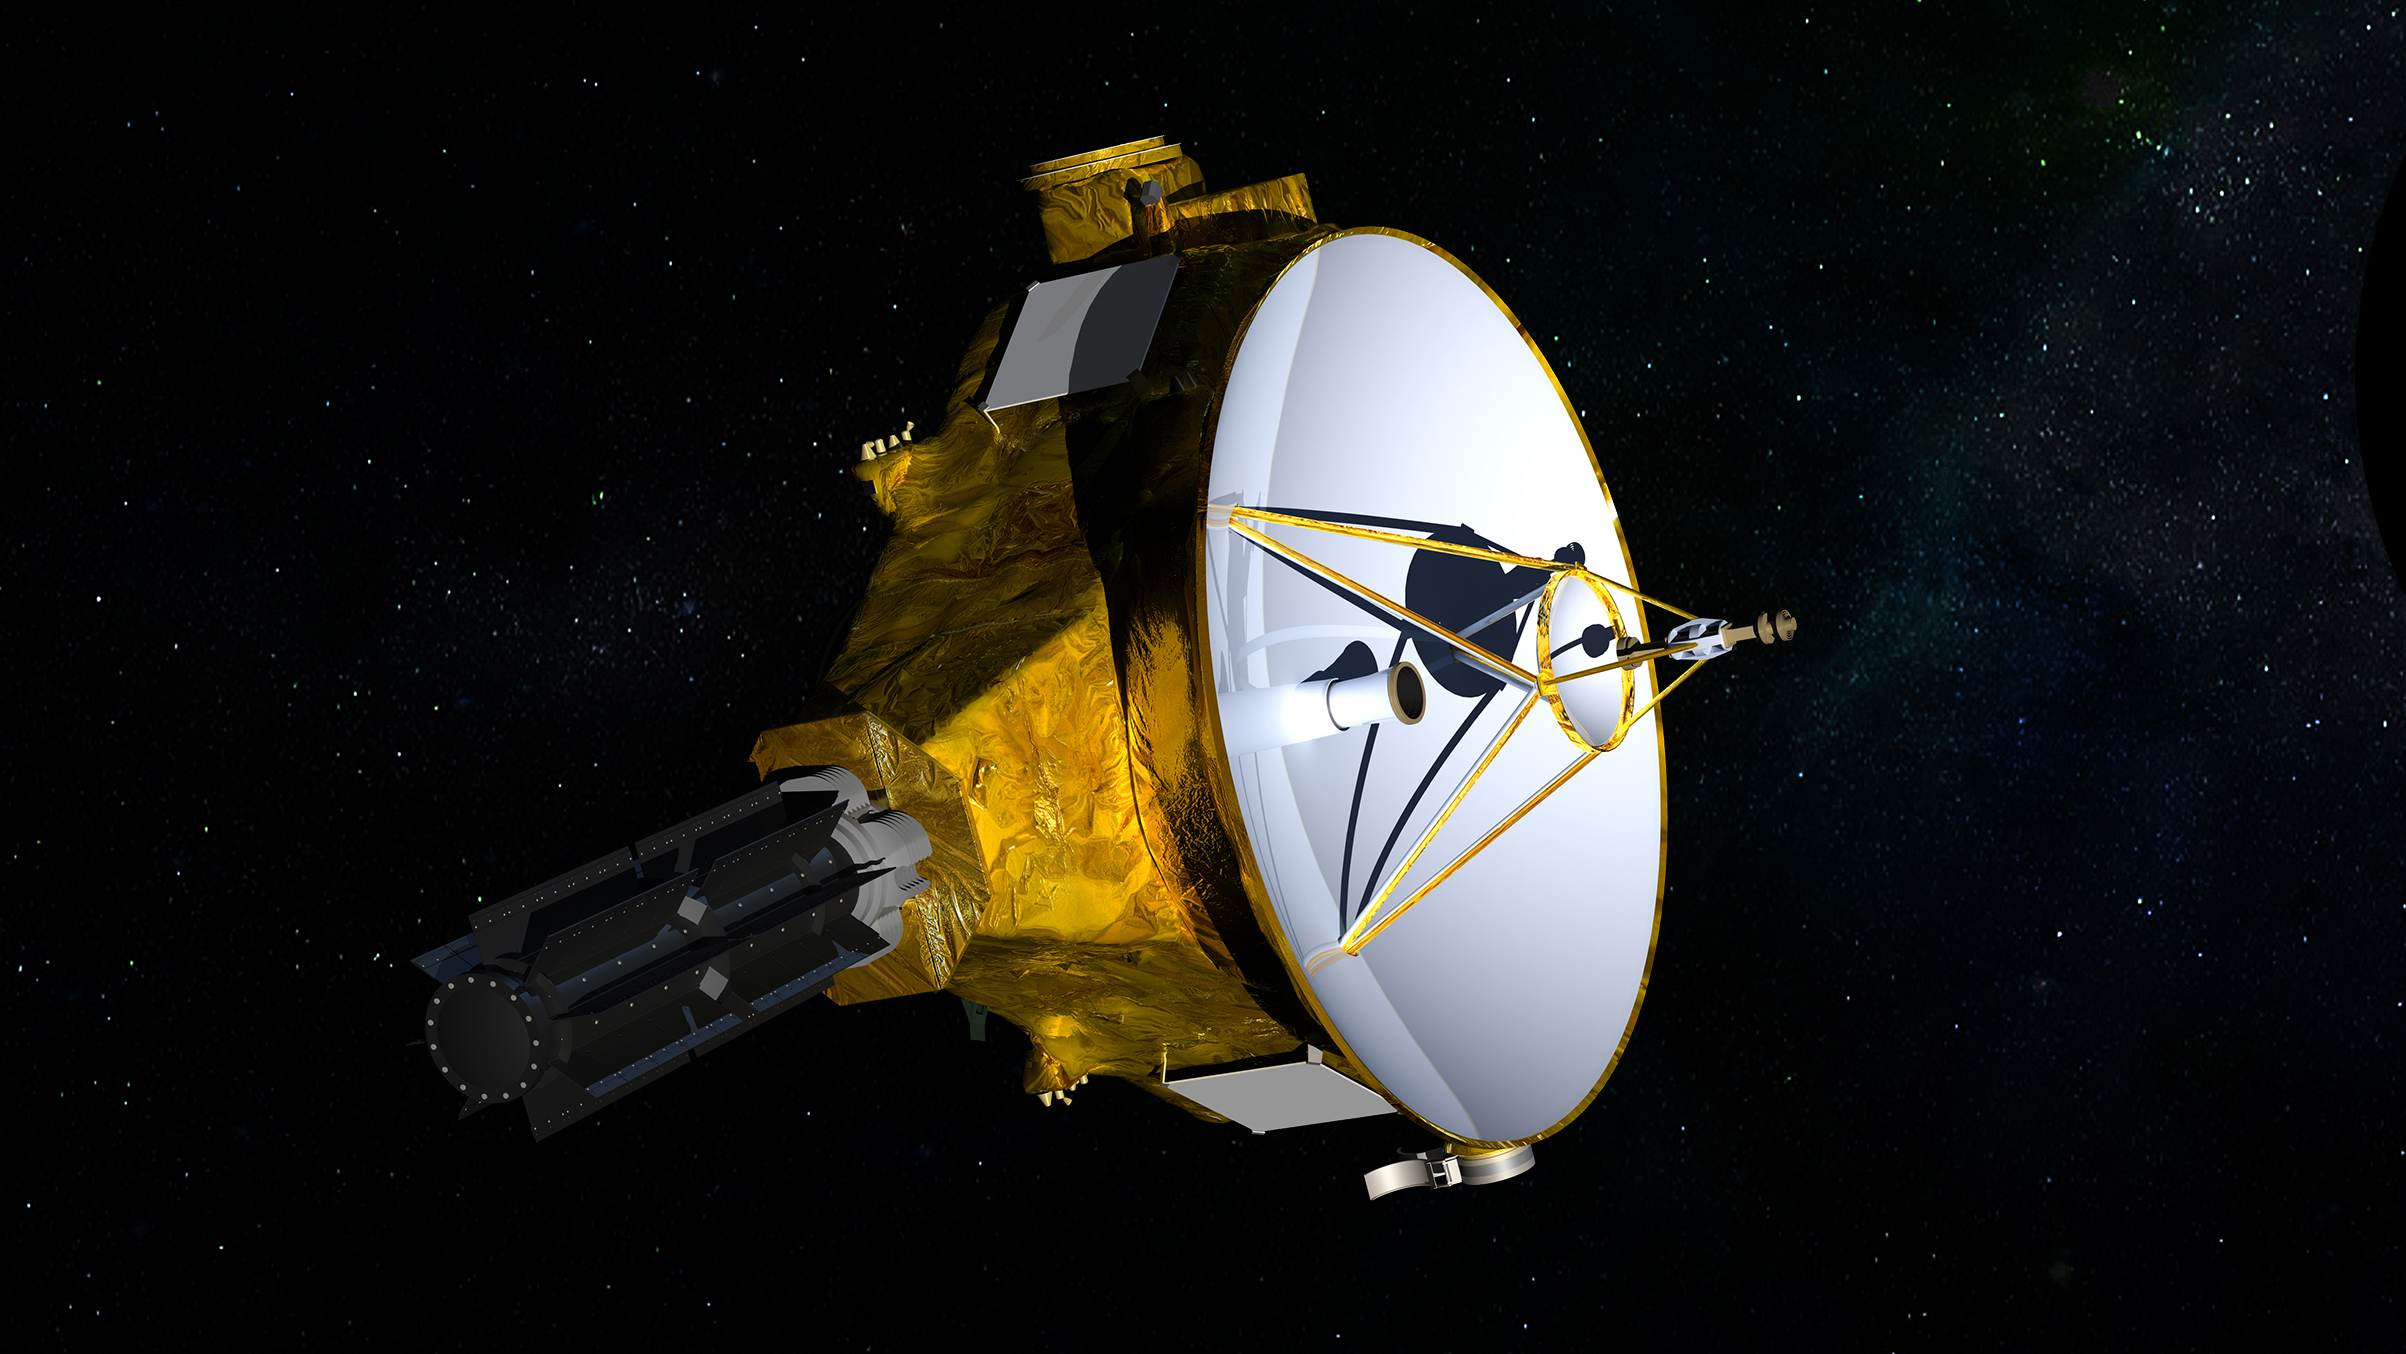 Artist's concept of the New Horizons spacecraft